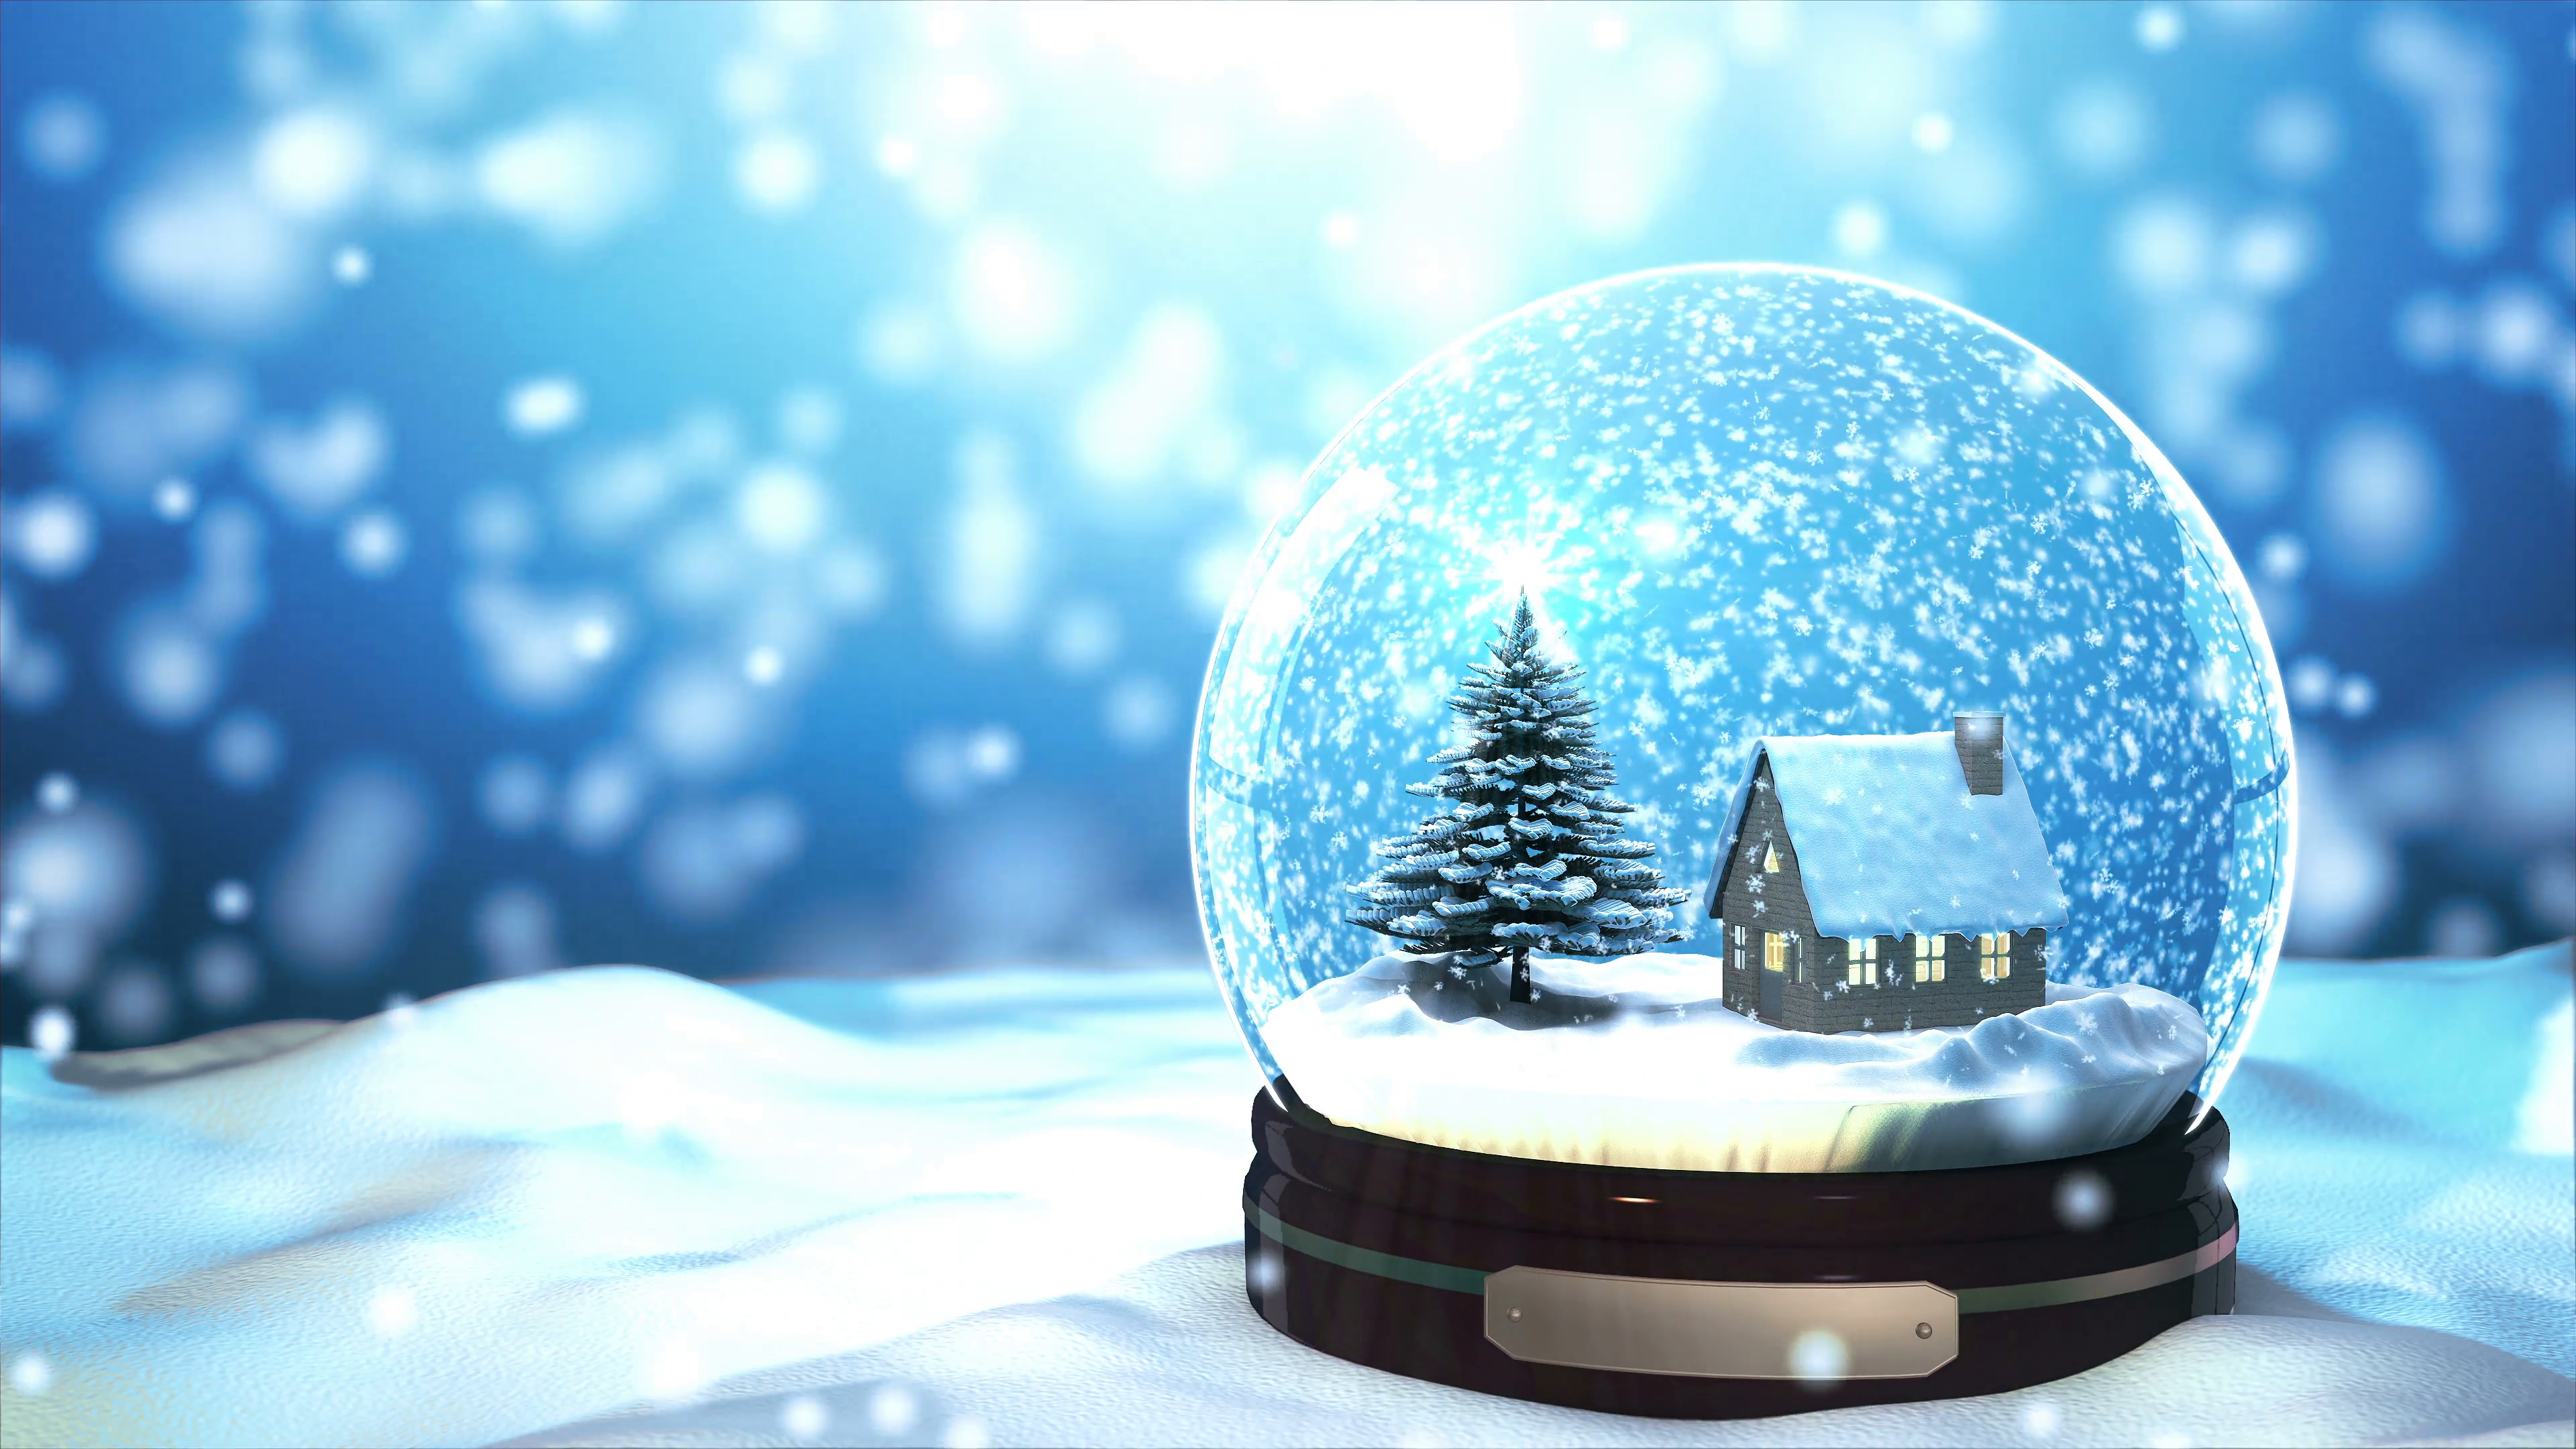 Christmas snow globes photo